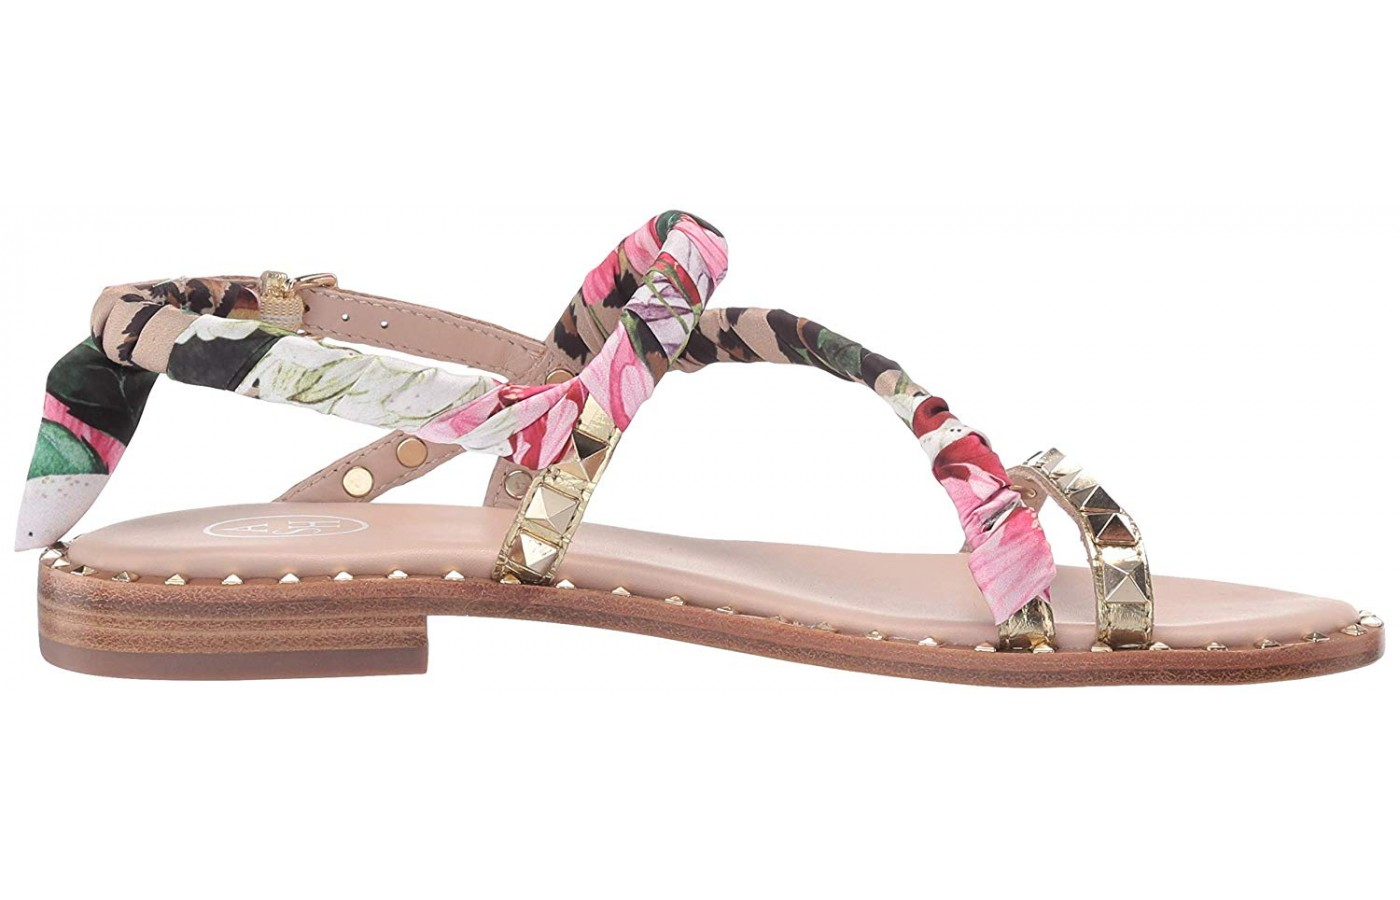 A one-inch heel provides some arch support in this Pattaya.